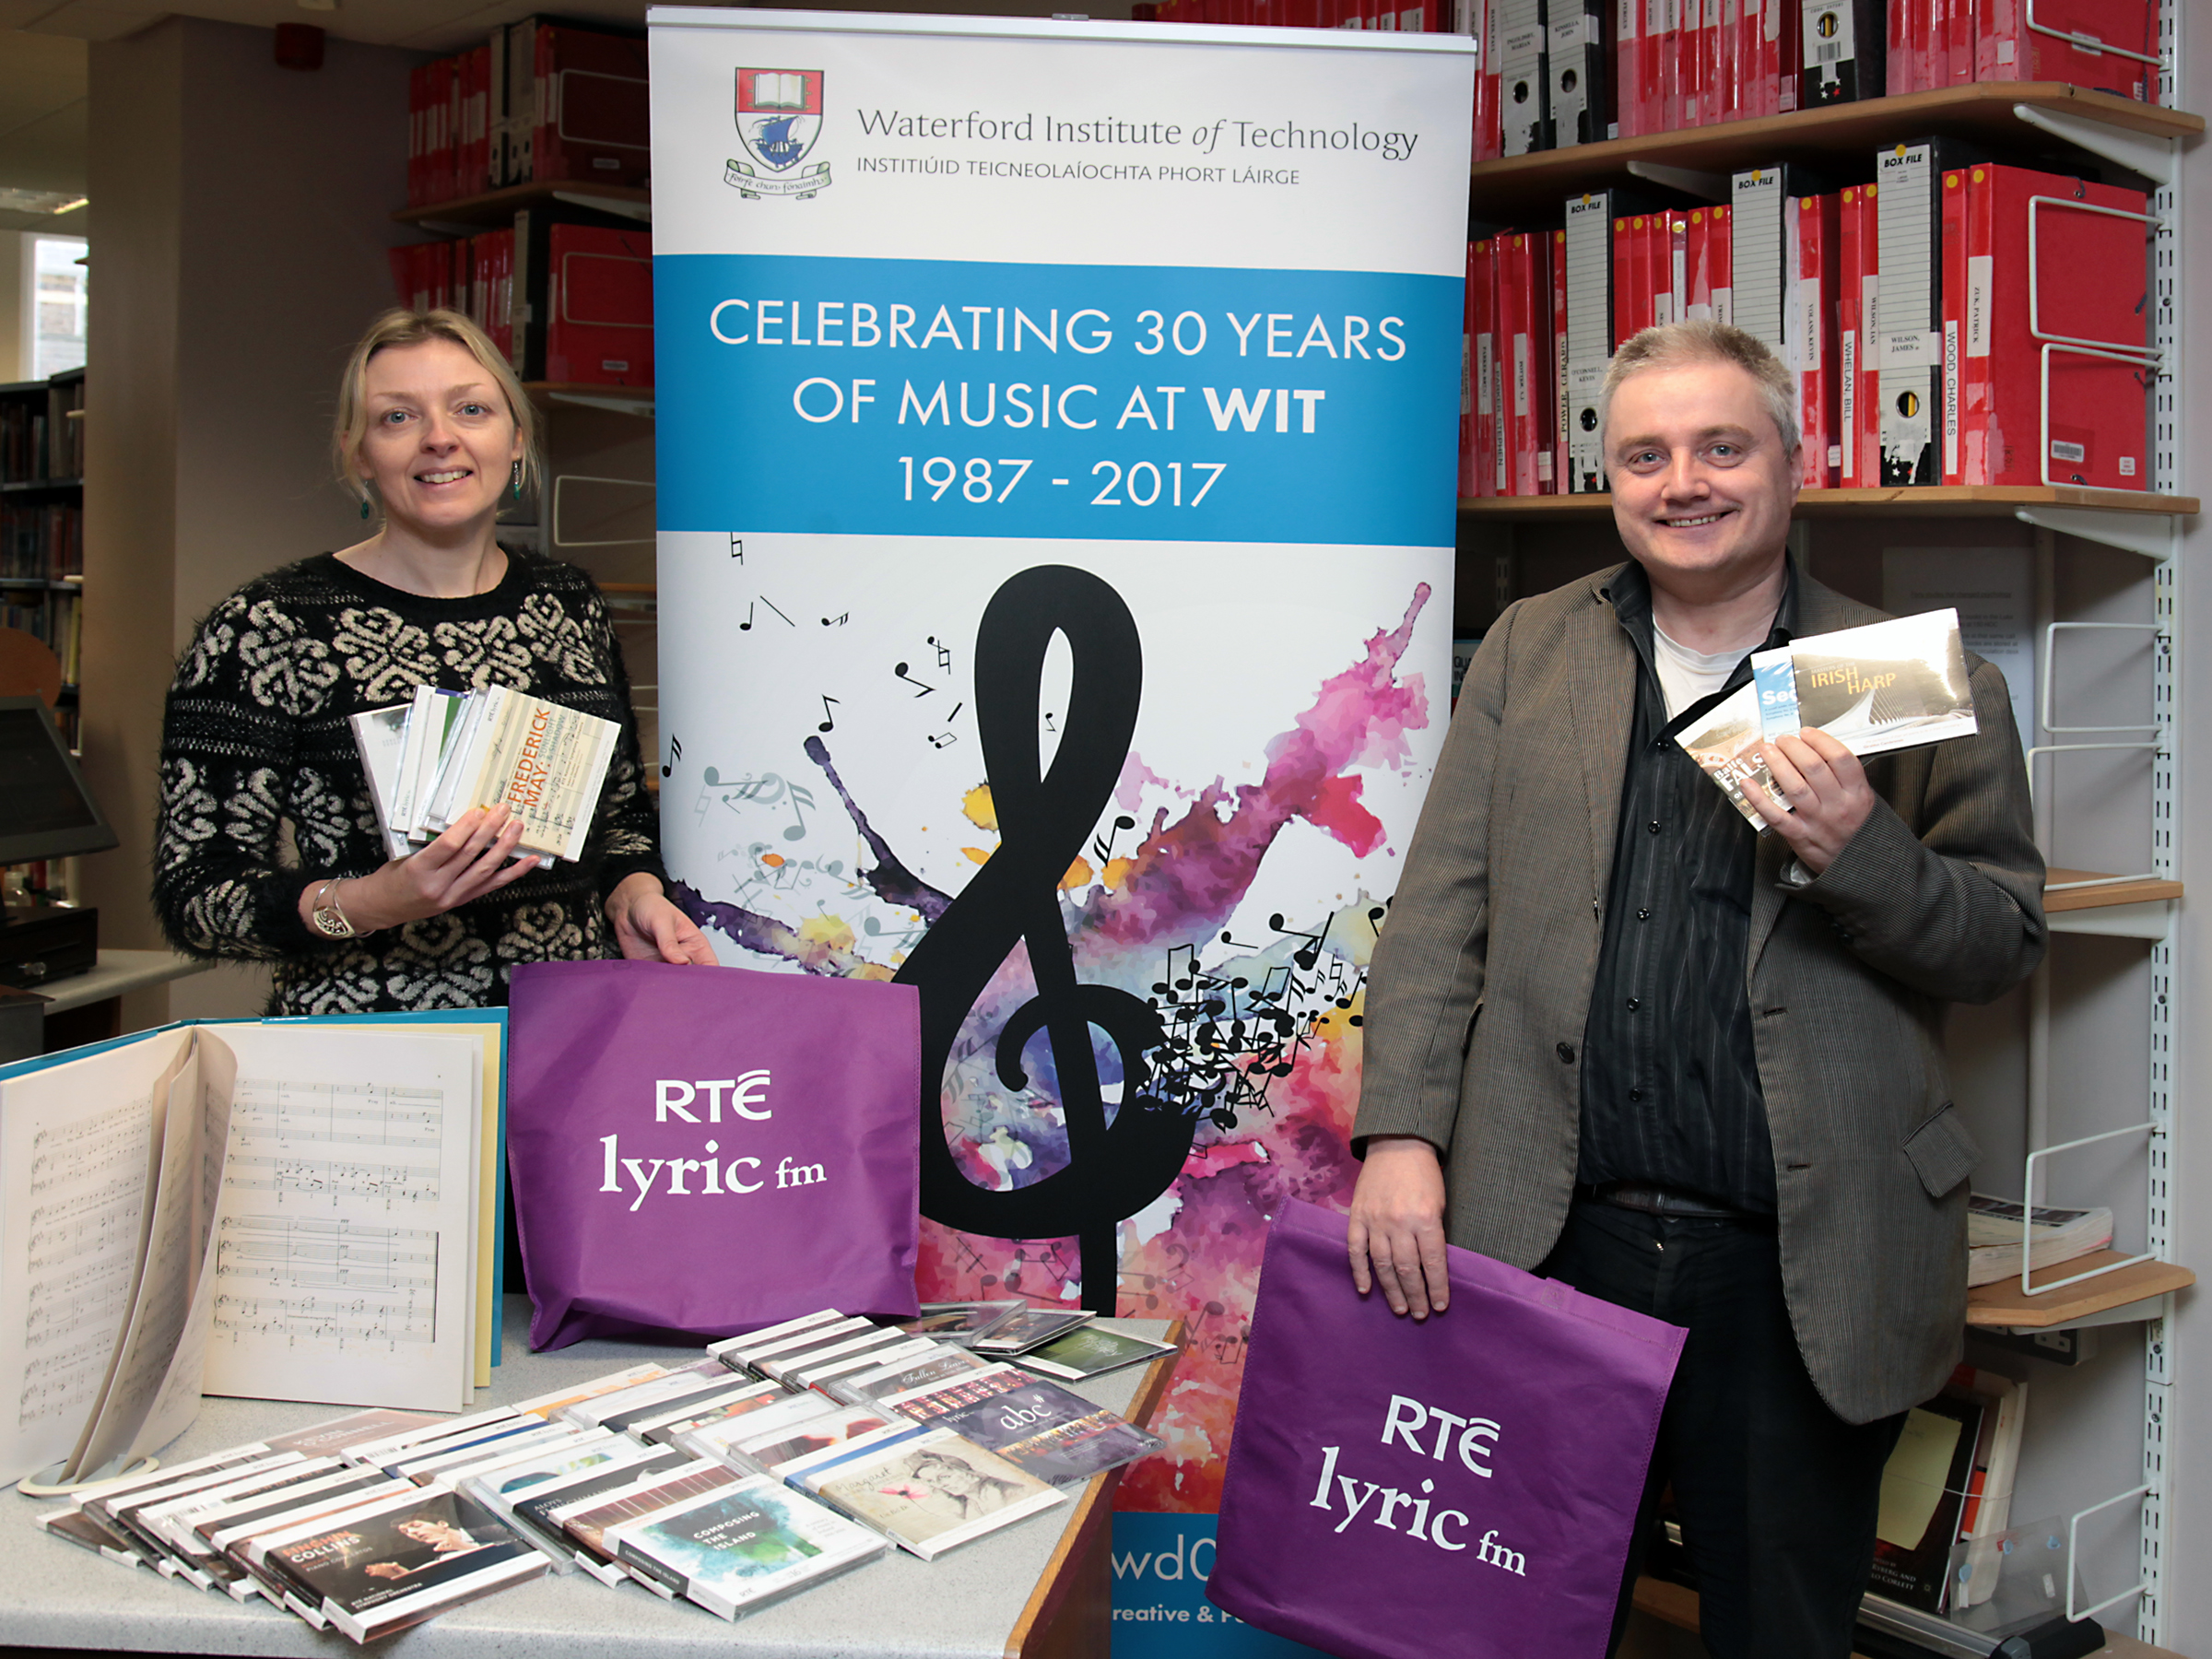 Pictured are Dr. Hazel Farrell and Neill Darby, College Street Library